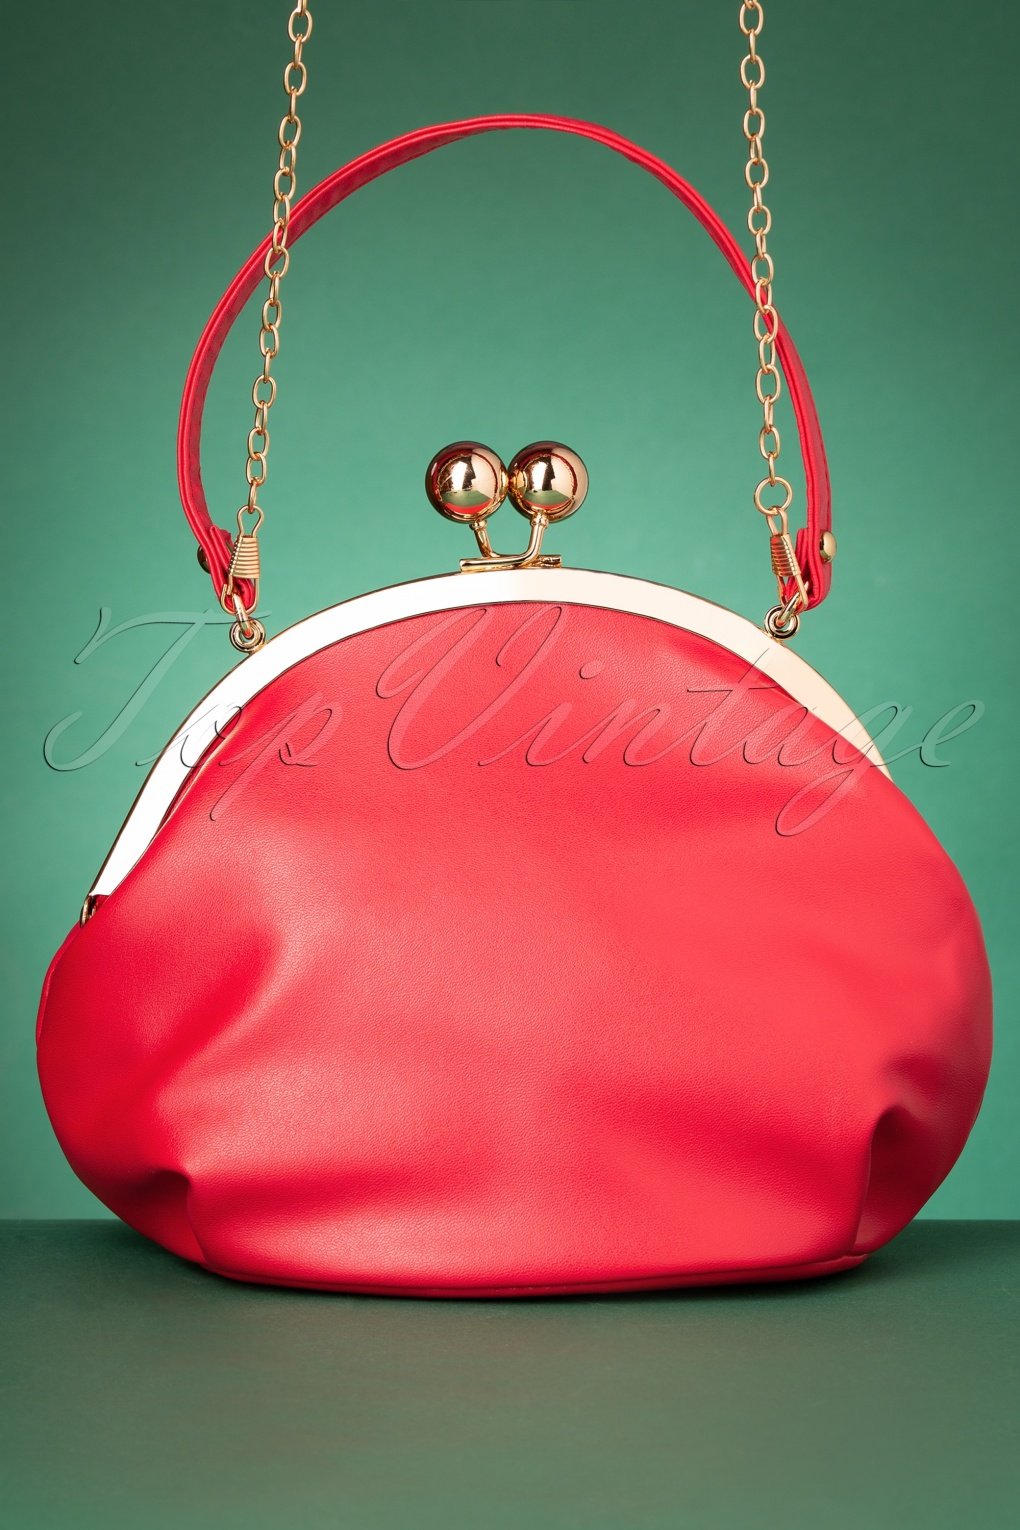 1950s Handbags, Purses, and Evening Bag Styles 50s Milly Elegant Daytime Bag in Red £36.16 AT vintagedancer.com